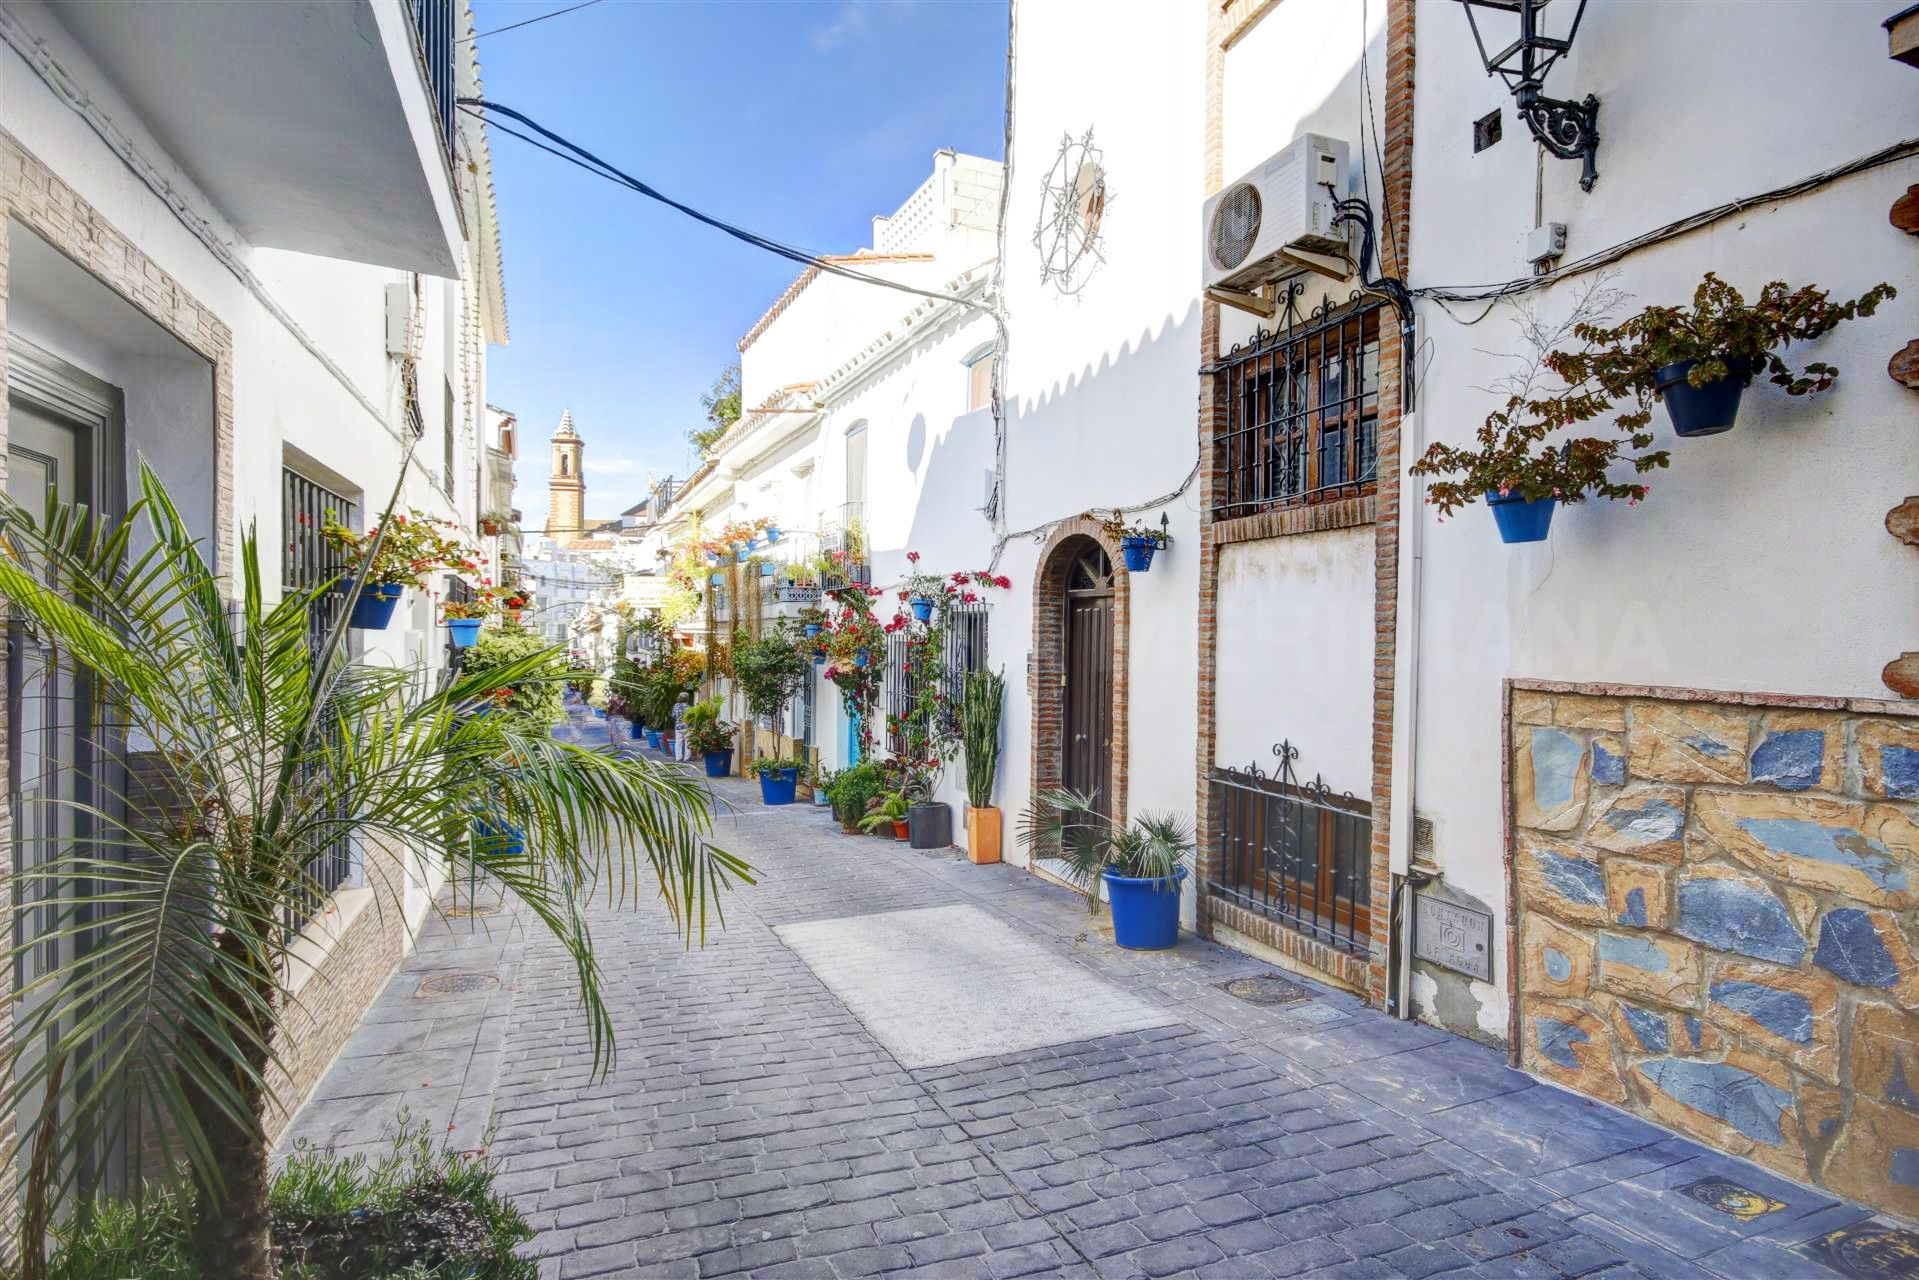 Casco Antiguo de Estepona